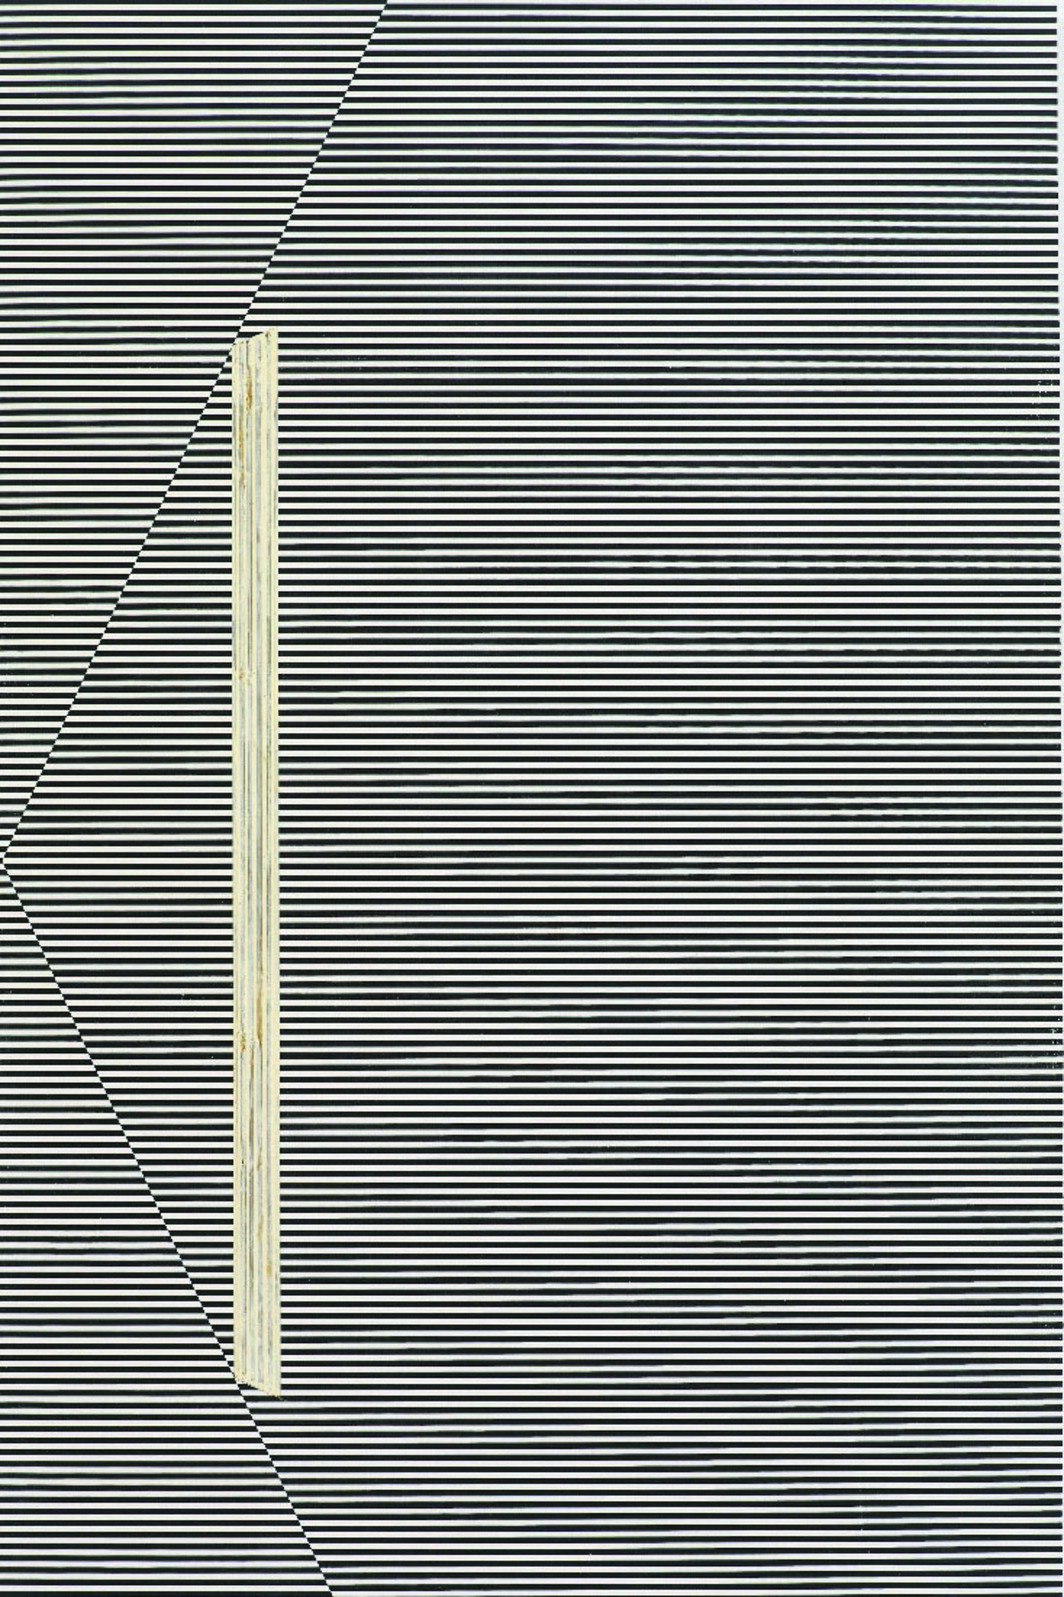 "R.H. Quaytman, Exhibition Guide, Chapter 15, 2009, oil, silk screen, gesso on wood, 32 3/8 x 20""."